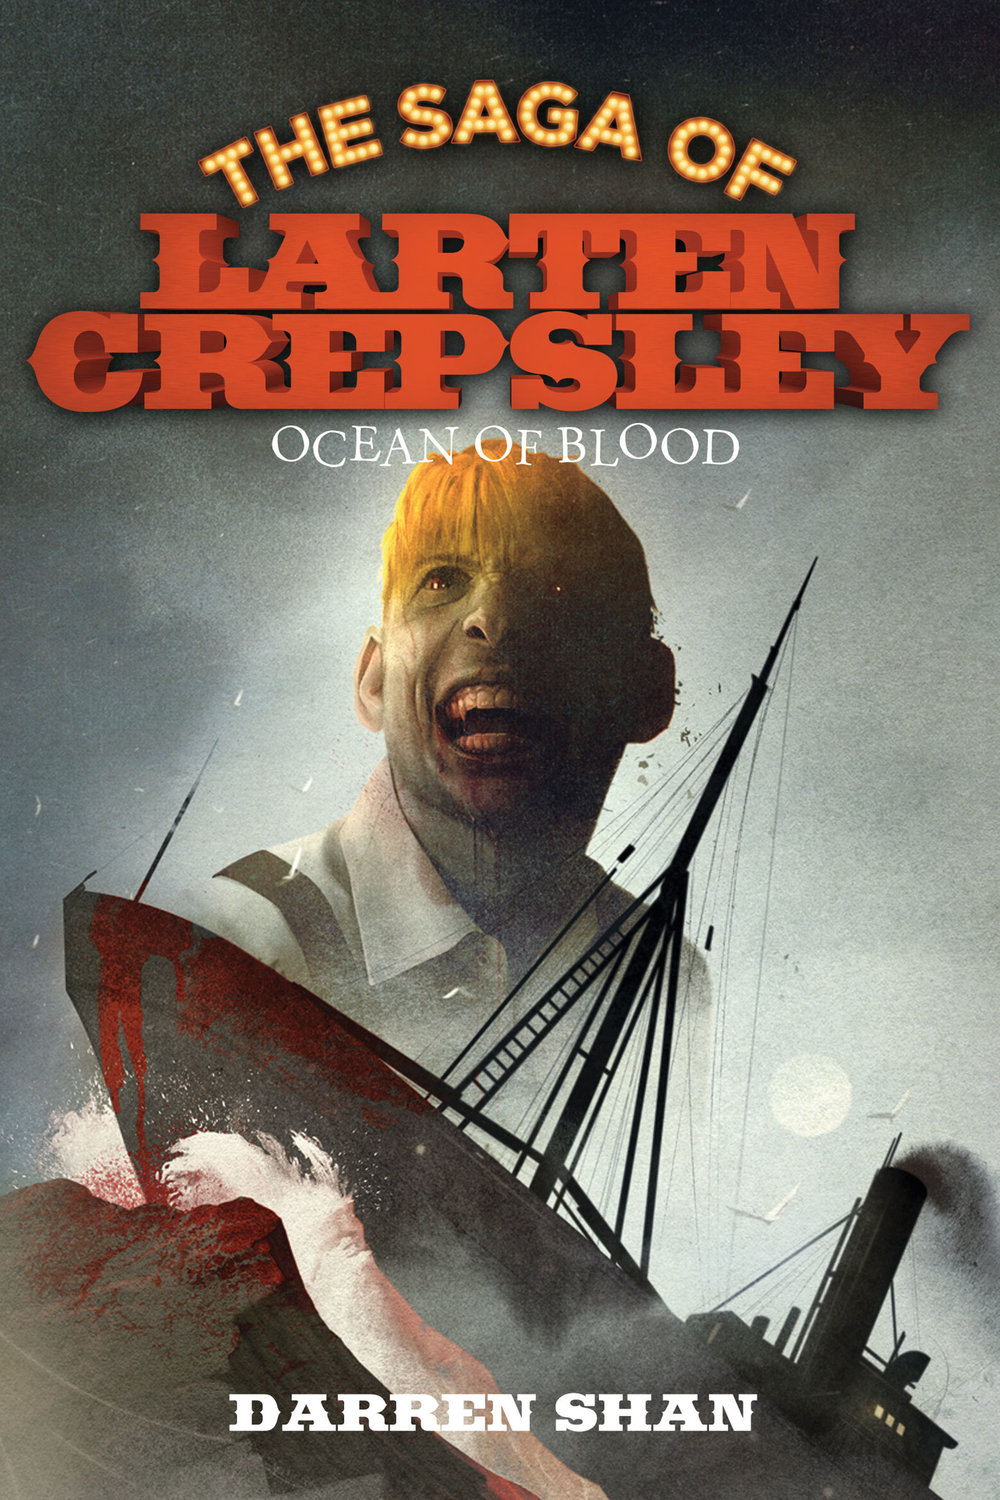 The Saga of Larten Crepsley: Ocean of Blood by Darren Shan Designed by Ben Mautner for Little, Brown Illustrated by Sam Weber